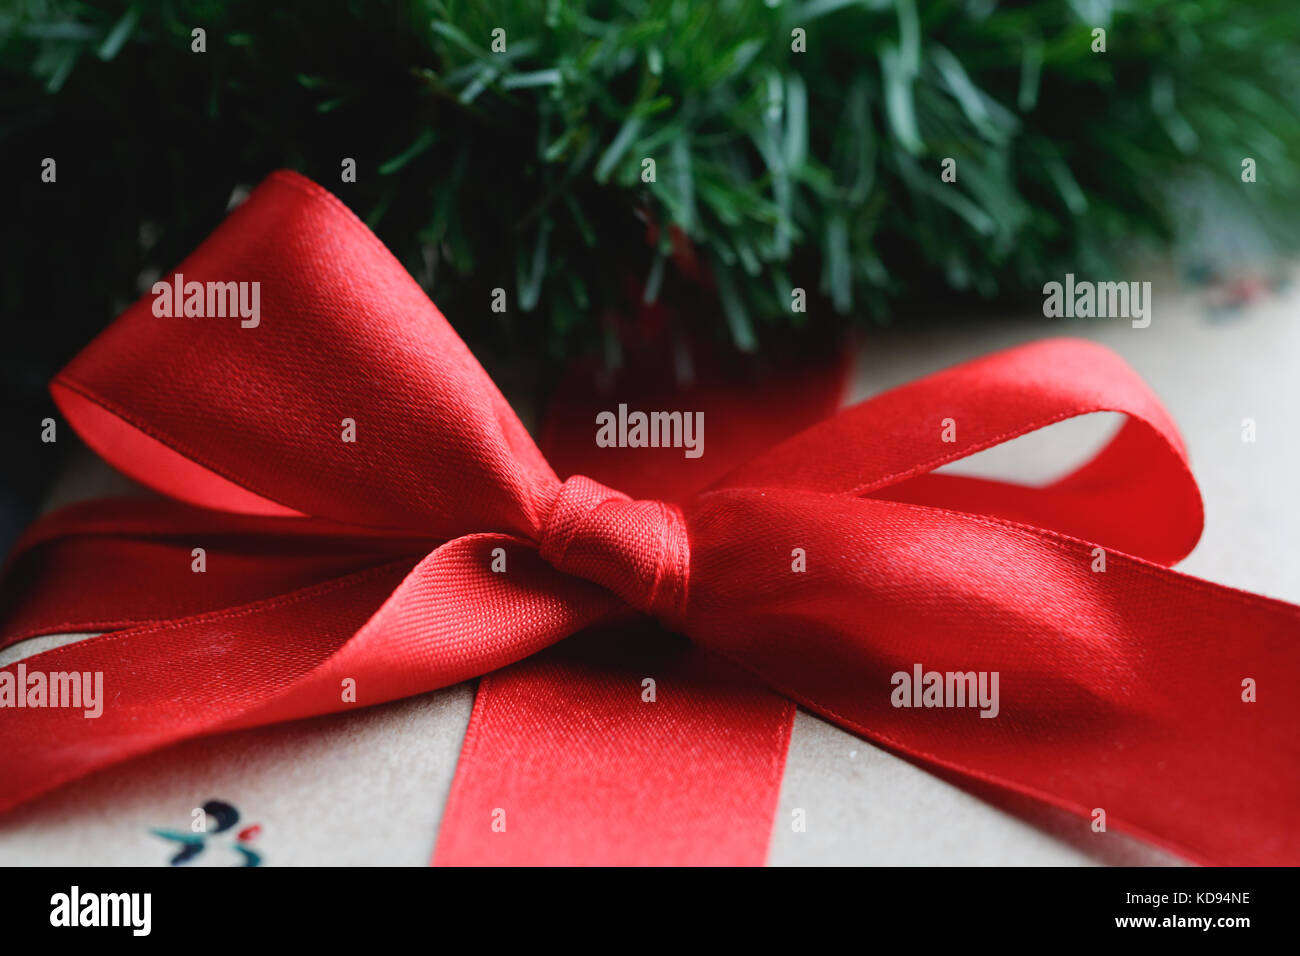 Close-up of a red bow on a gift box. Christmas concept. - Stock Image